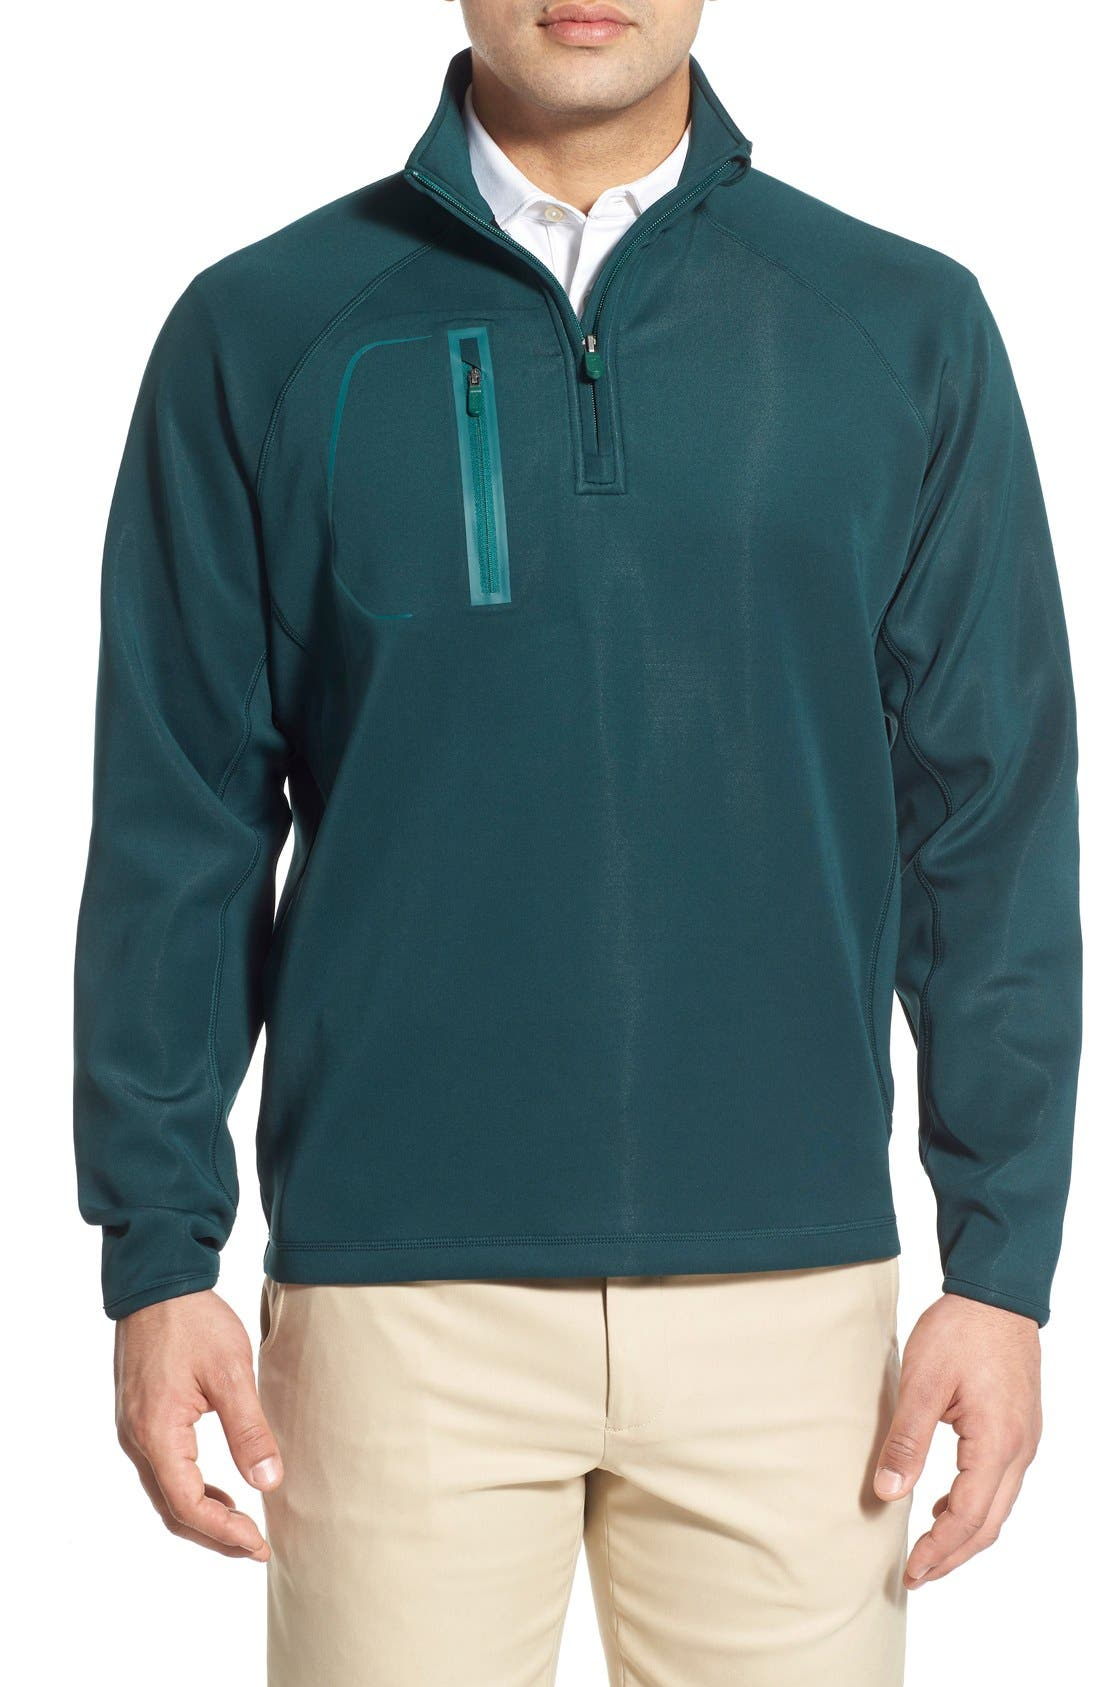 XH2O Crawford Stretch Quarter Zip Golf Pullover,                             Main thumbnail 7, color,